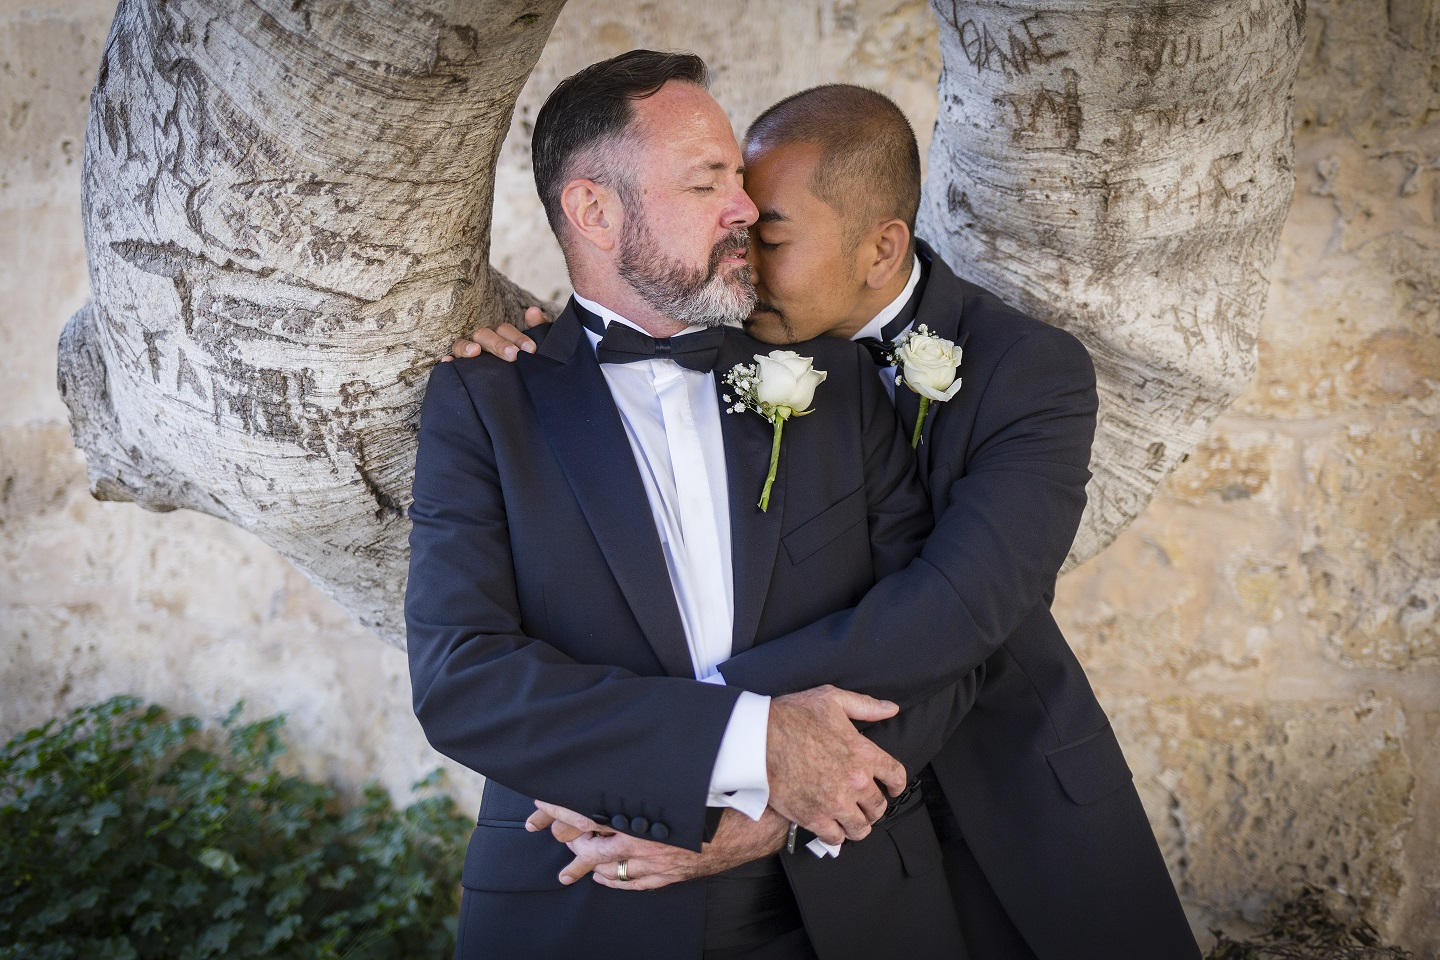 Gay wedding in Malta and Gozo